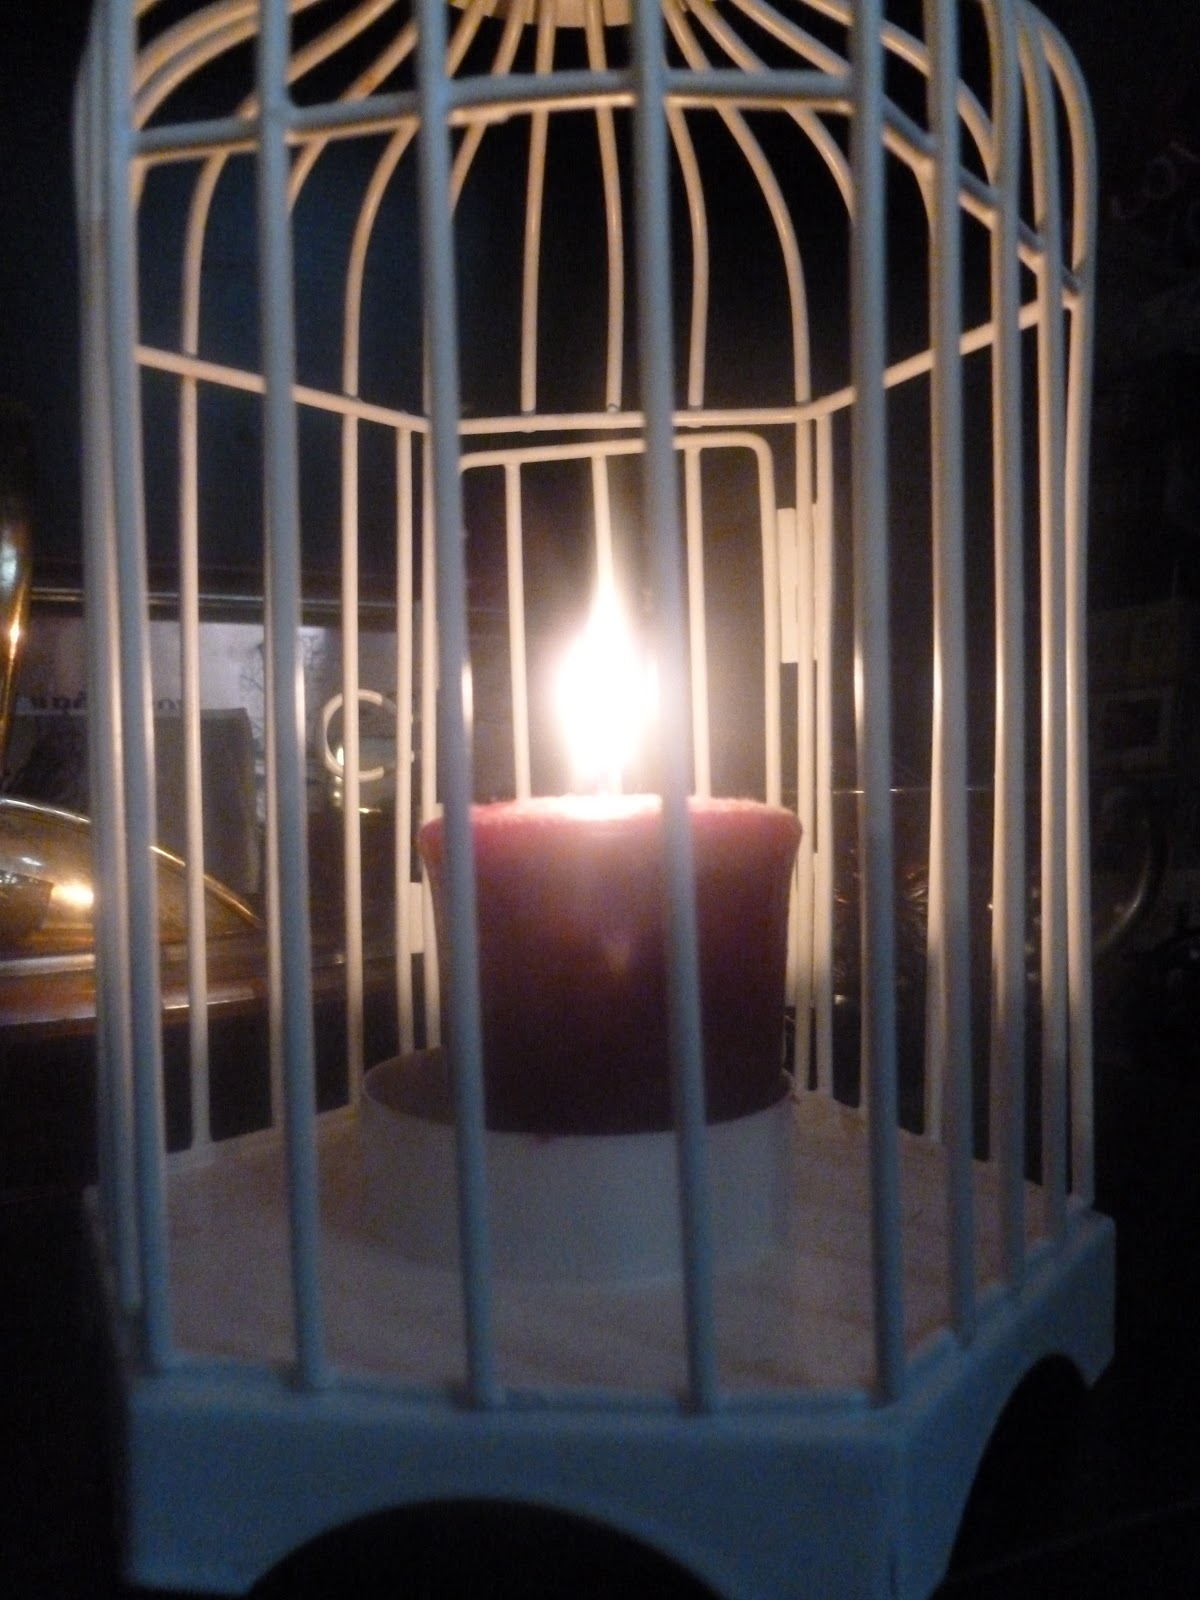 Today I have also been burning some lovely 'Yankee Candles', my favourite ...